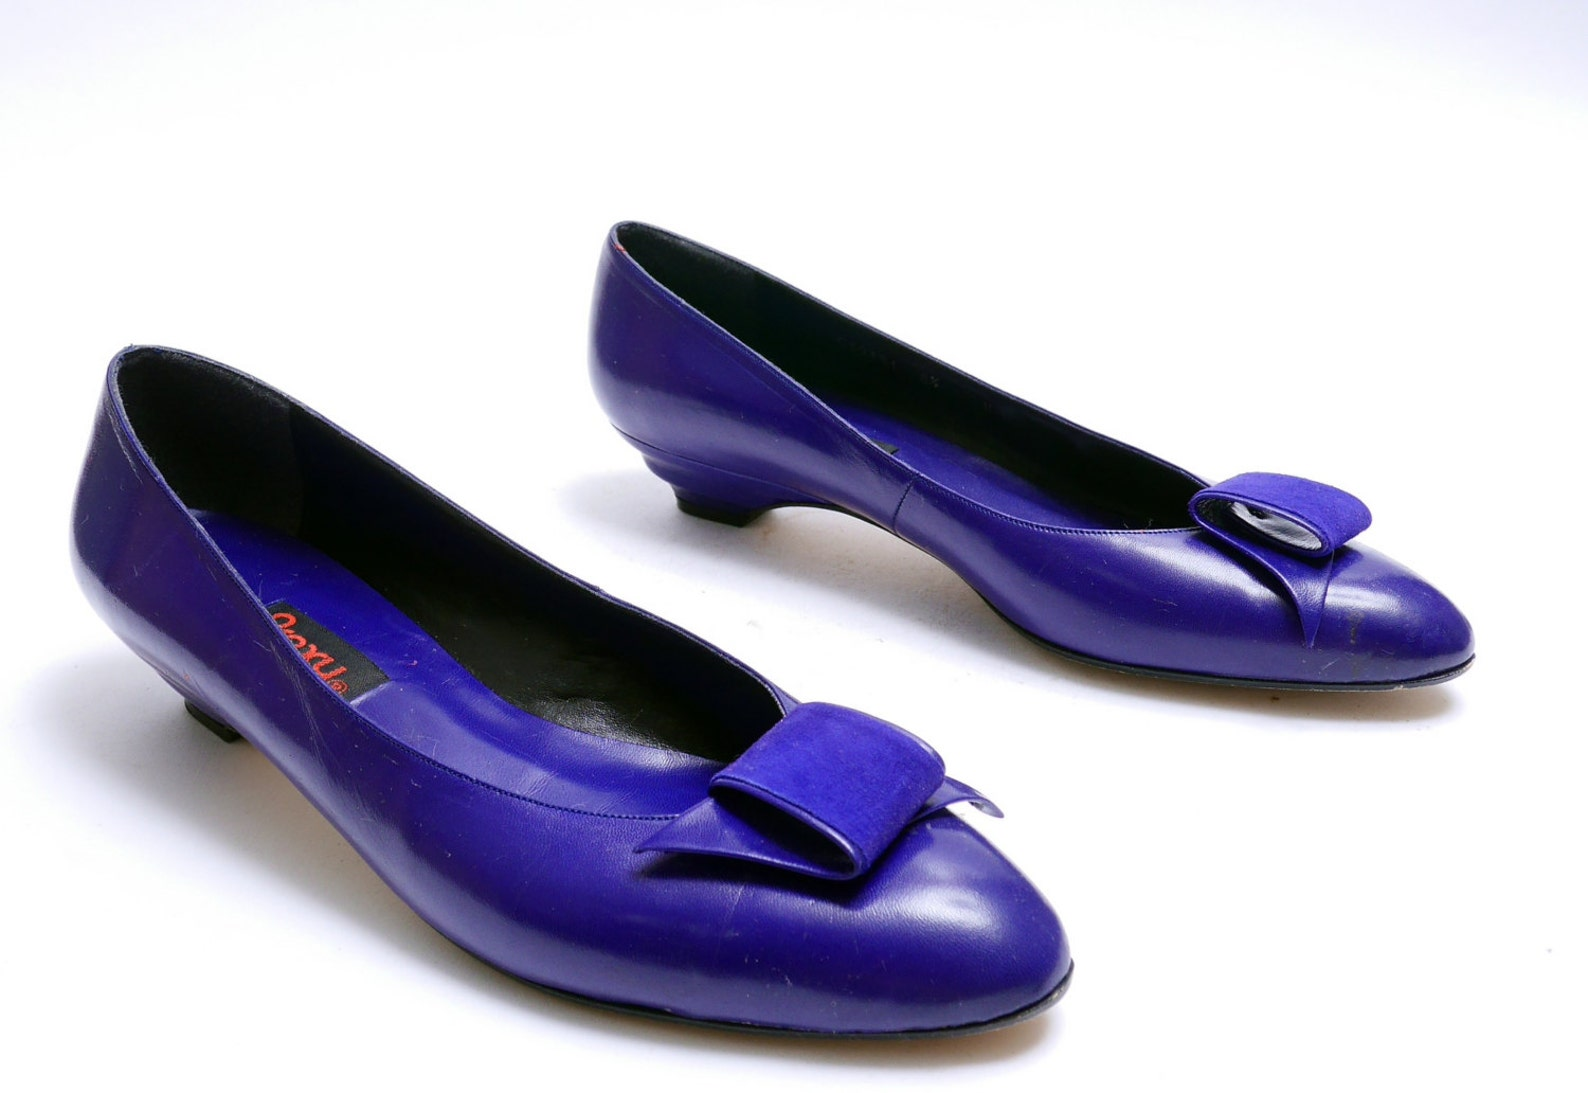 vintage 80s indigo violet proxy pumps// retro chic blue ballet flats // glam dress shoes// 8 1/2n size // 103